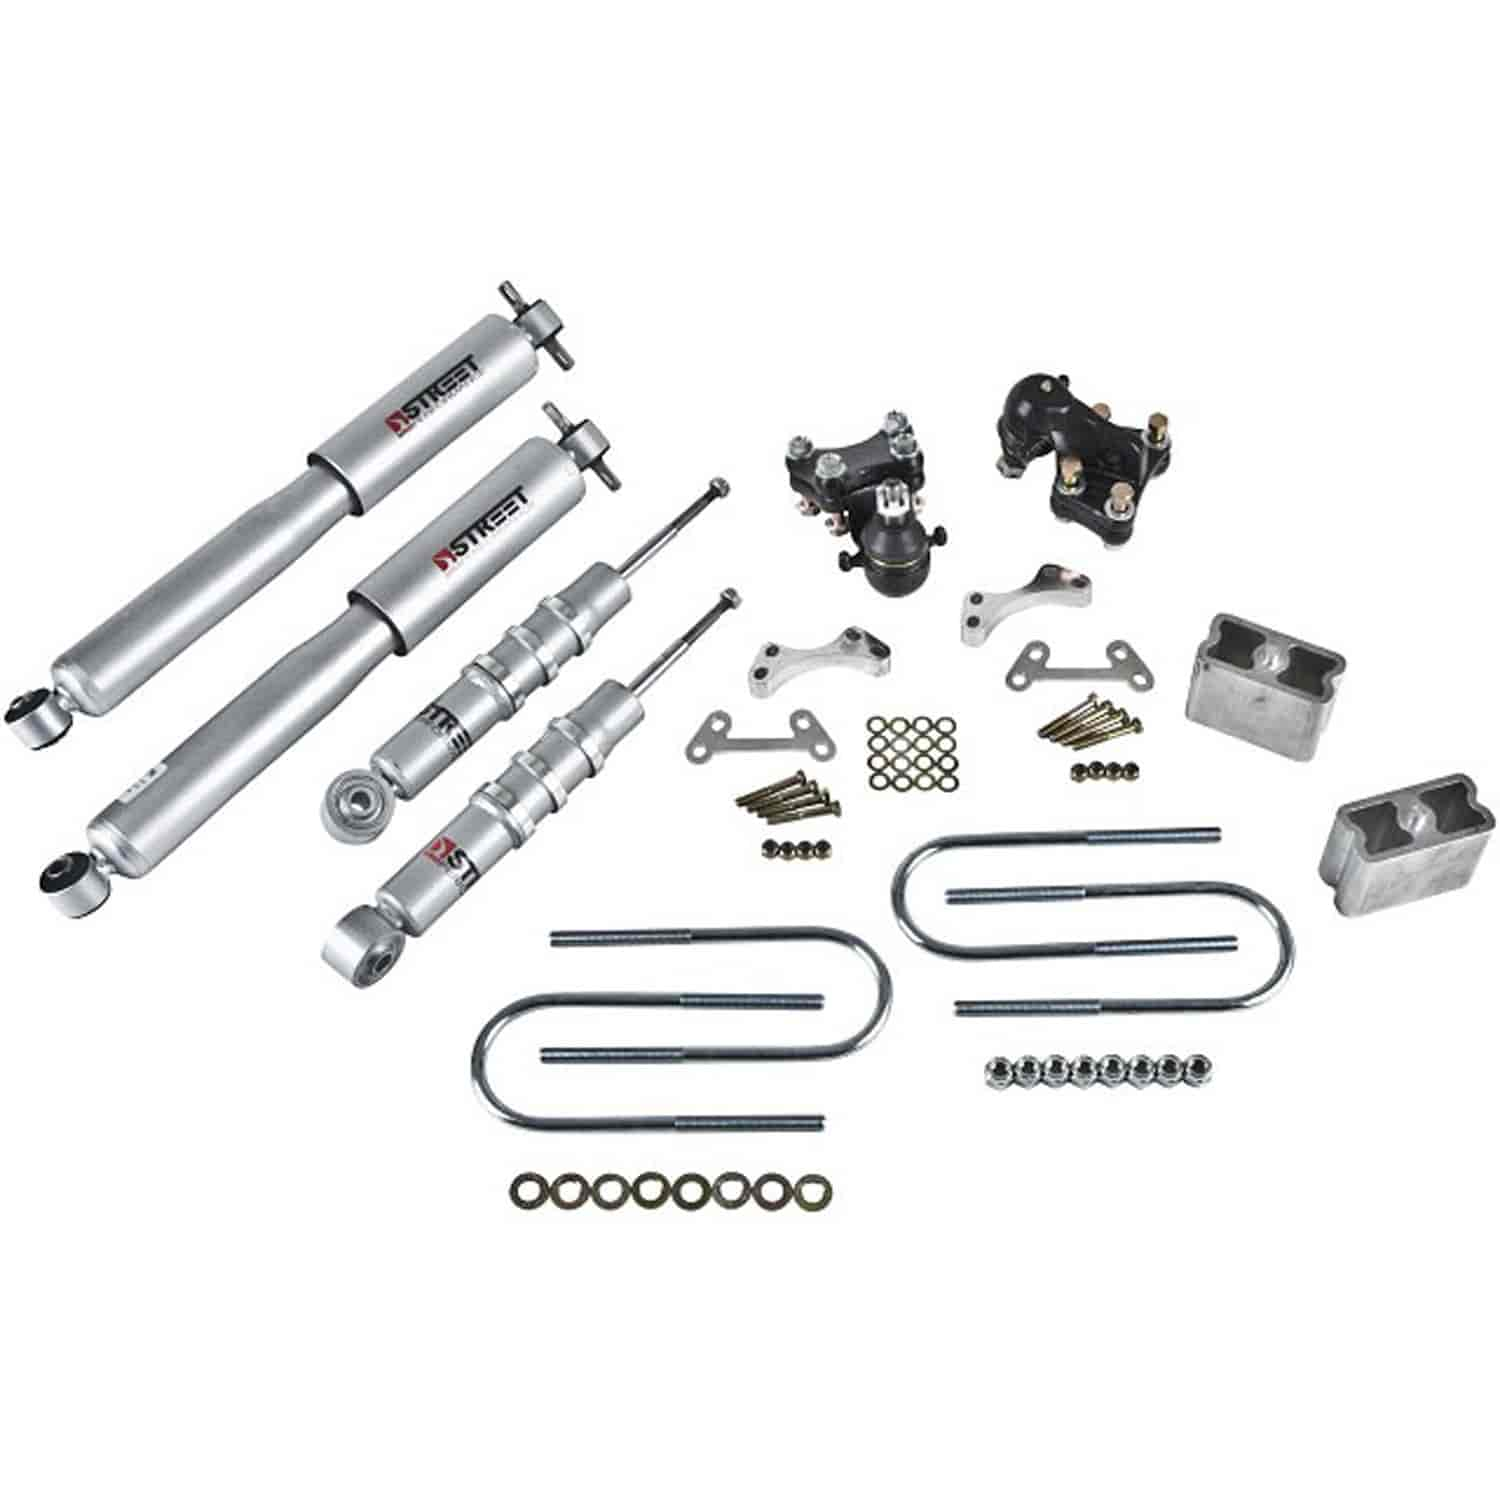 Belltech 603SP: Complete Lowering Kit for 2004-2012 Chevy